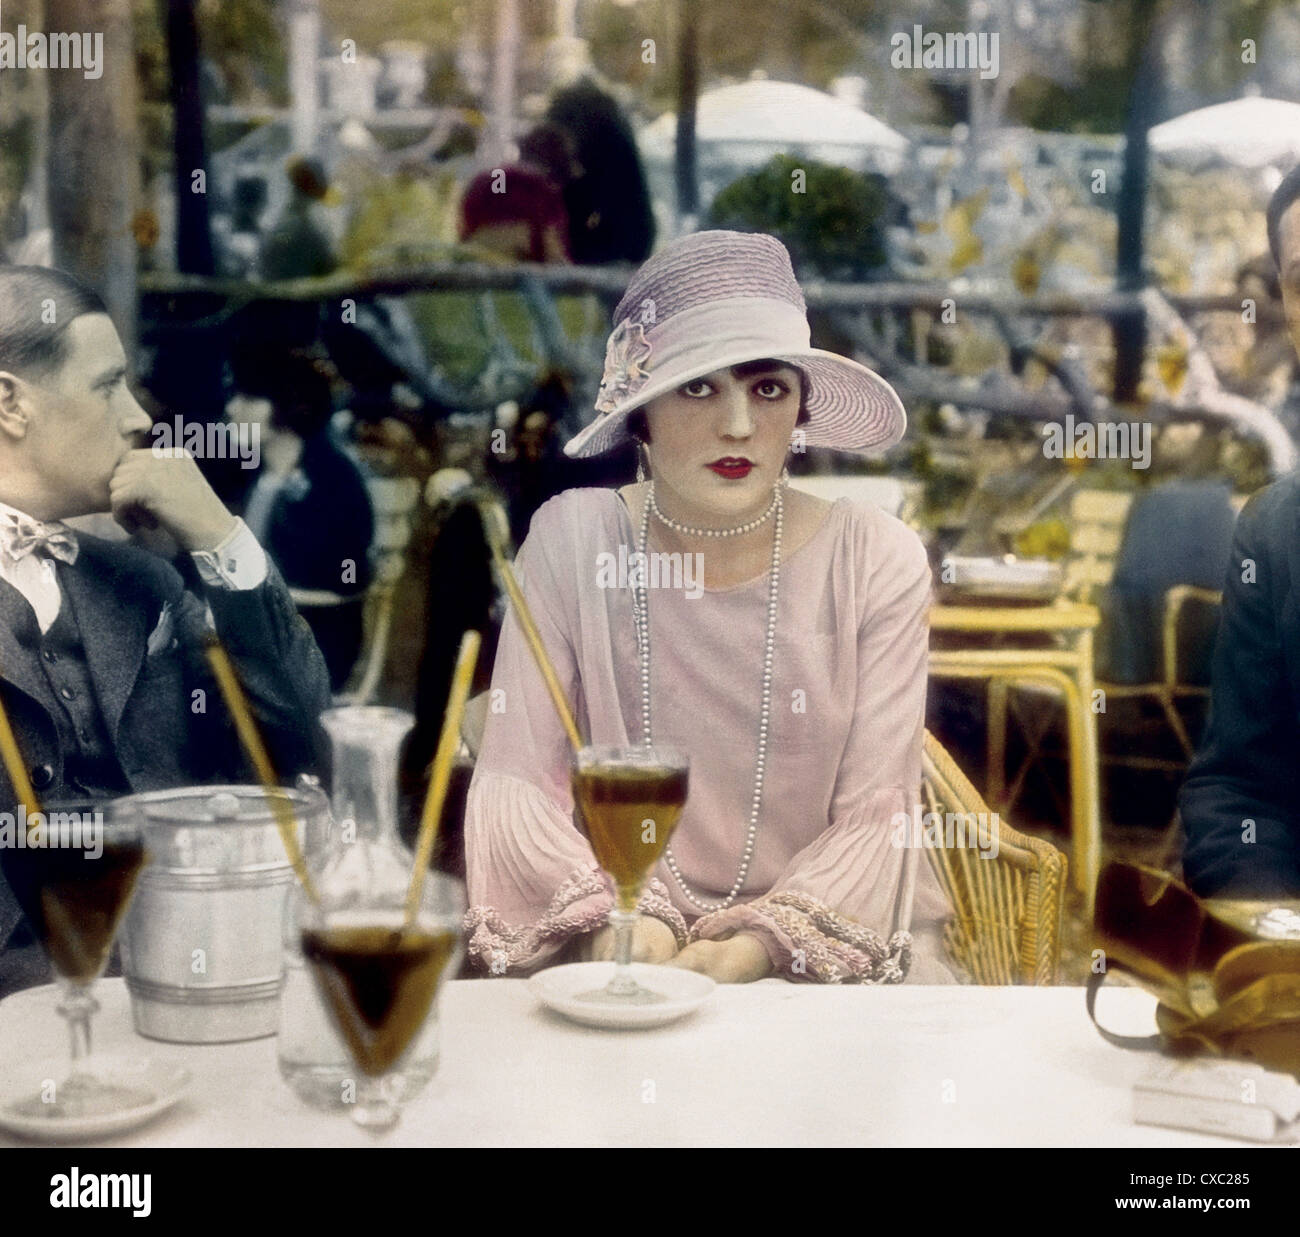 Pola Negri, au Café de la paix, Paris, France, 1927 Photo Stock